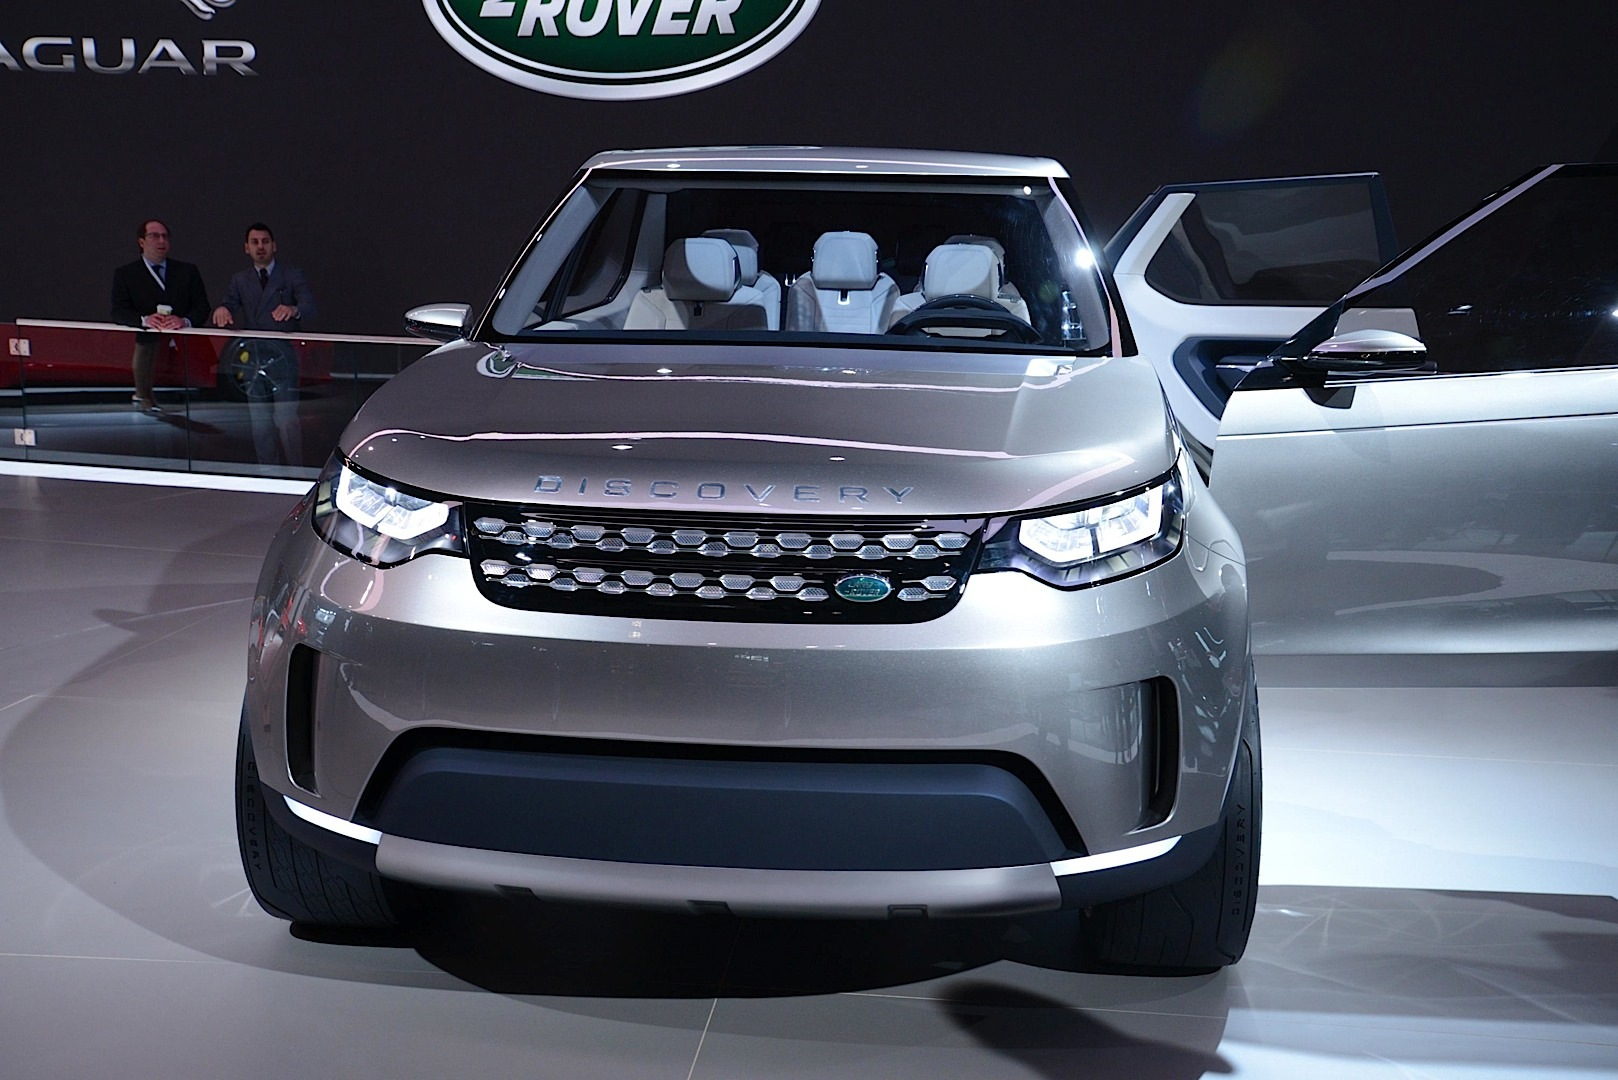 https://s1.cdn.autoevolution.com/images/news/gallery/land-rover-discovery-vision-concept-offroading-in-new-york-live-photos_2.jpg